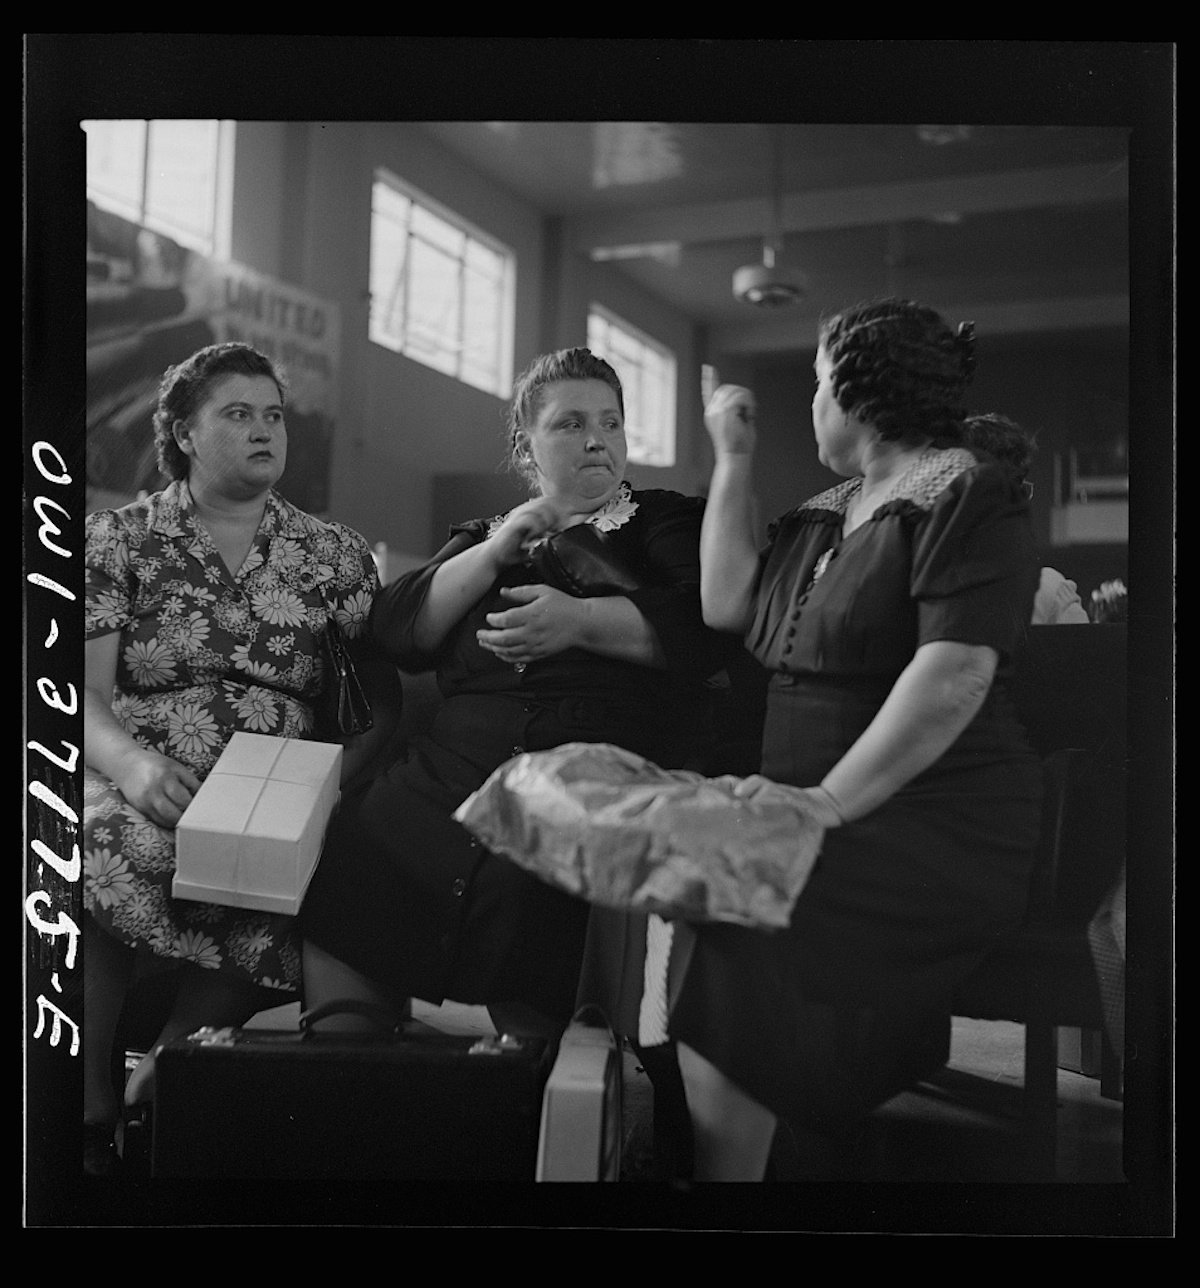 Pittsburgh, Pennsylvania. Passengers in the waiting room of the Greyhound bus terminal